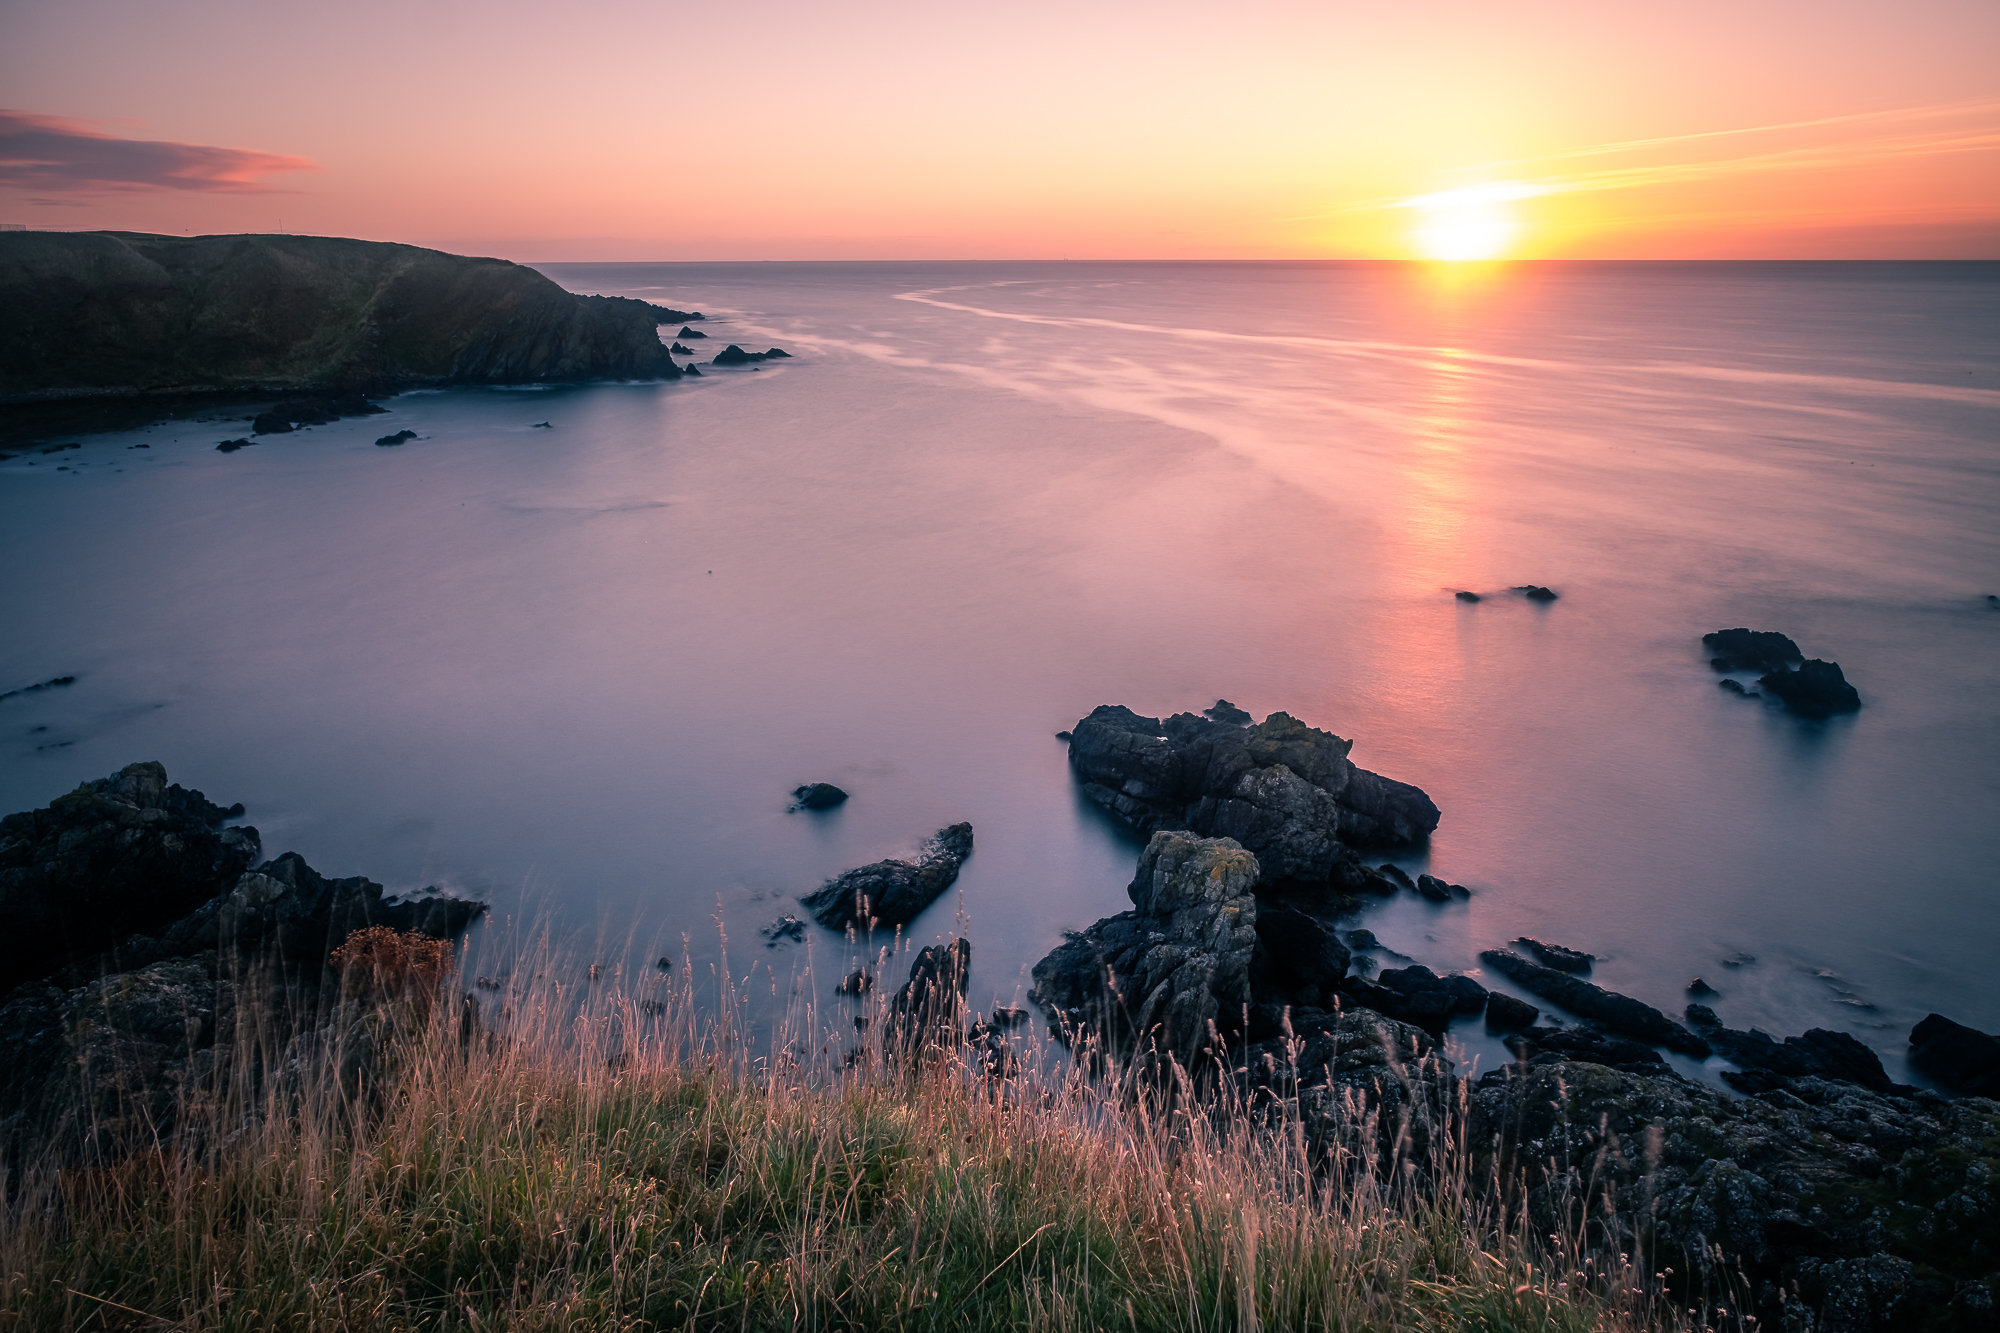 Rising sun seen from Stonehaven, image by Giuseppe Milo, Creative Commons CC By.20